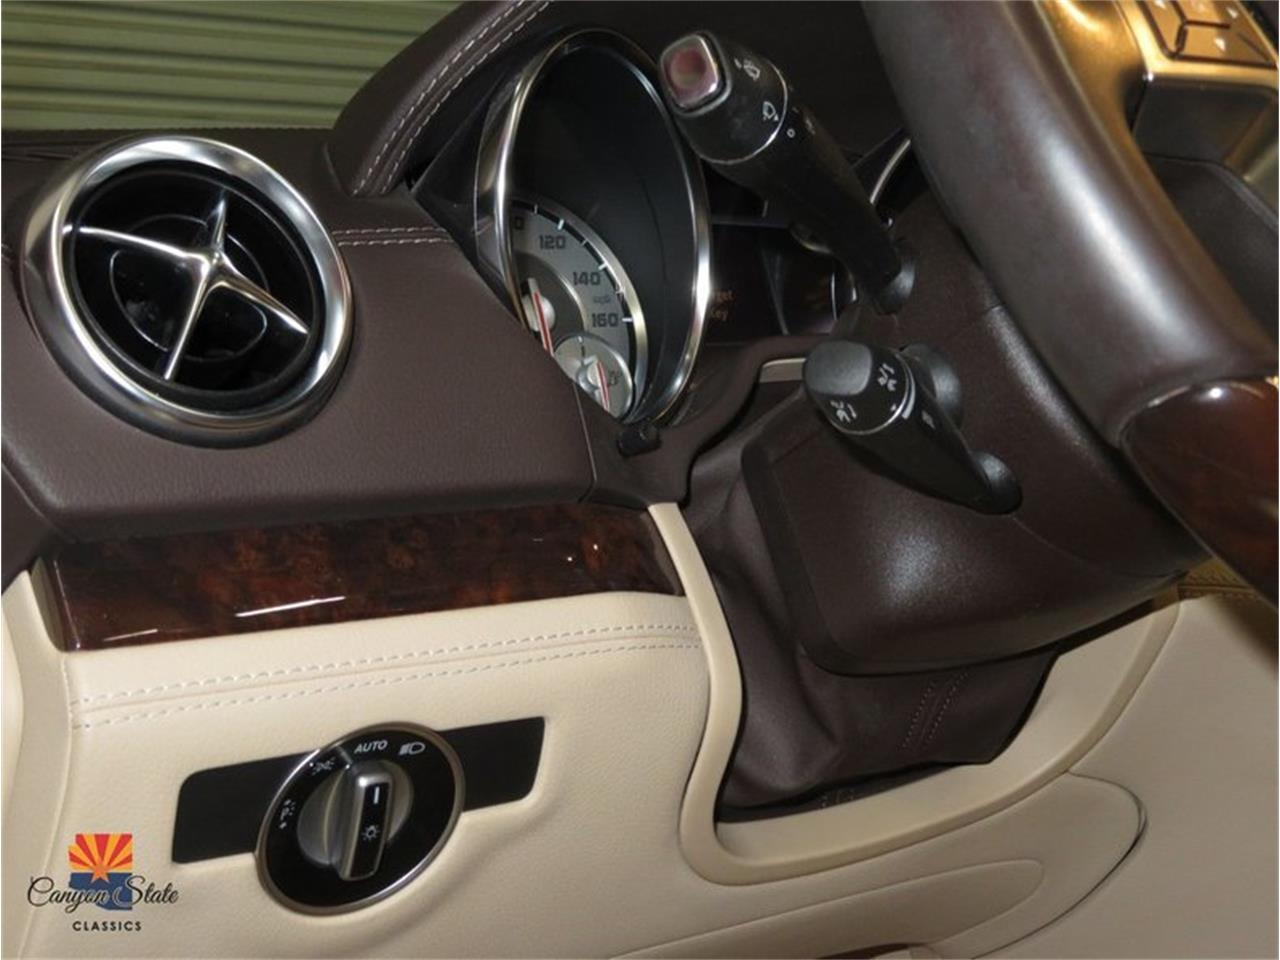 2013 Mercedes-Benz SL-Class for sale in Tempe, AZ – photo 93